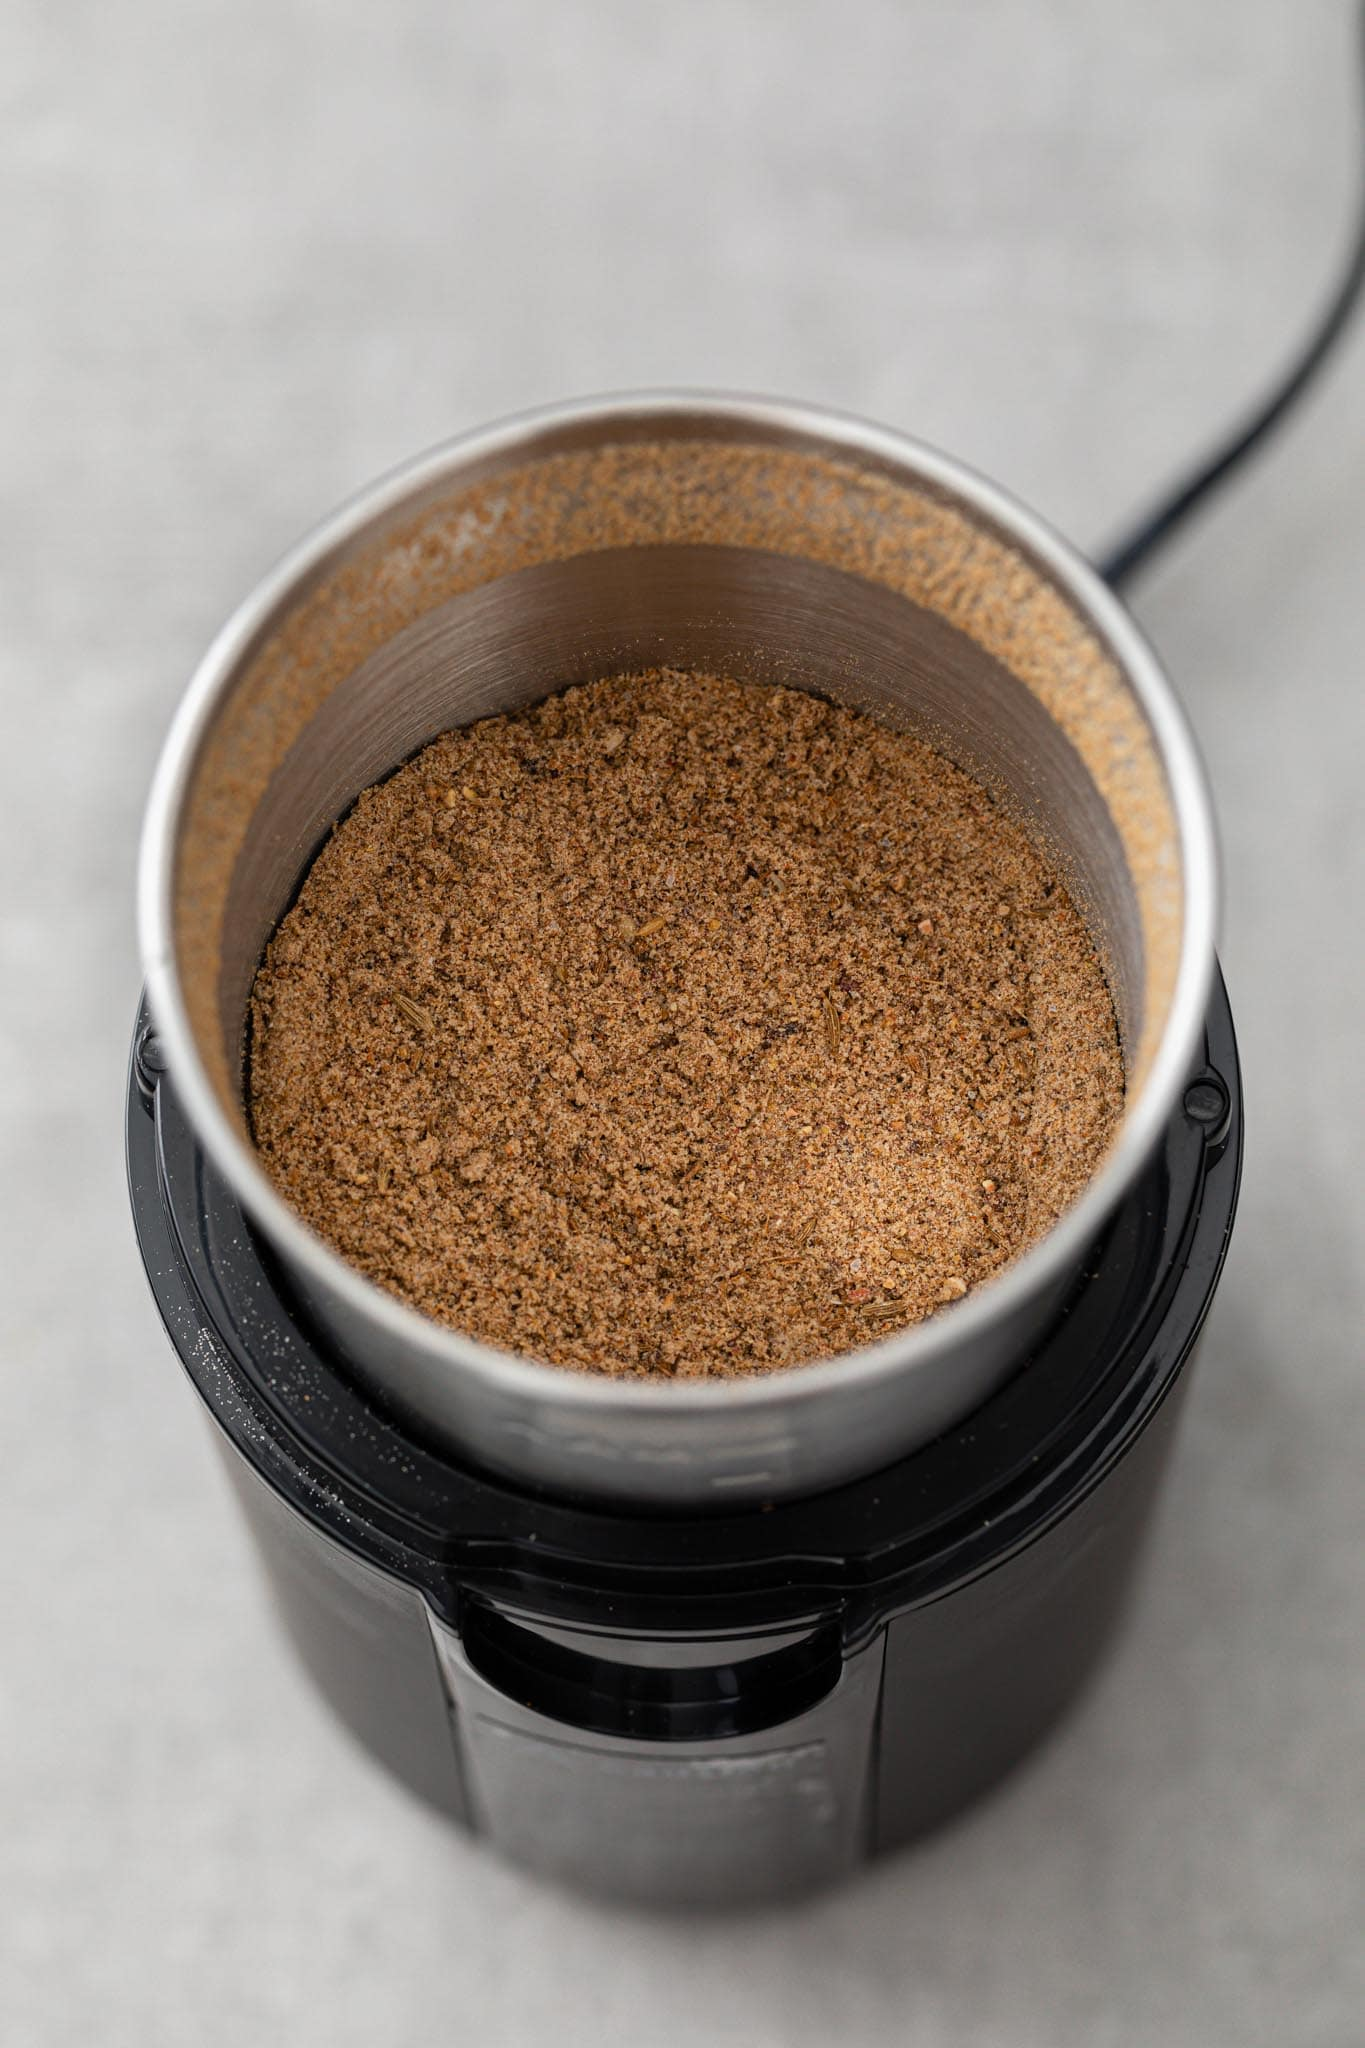 Ground chaat masala in a spice grinder ready to be stored